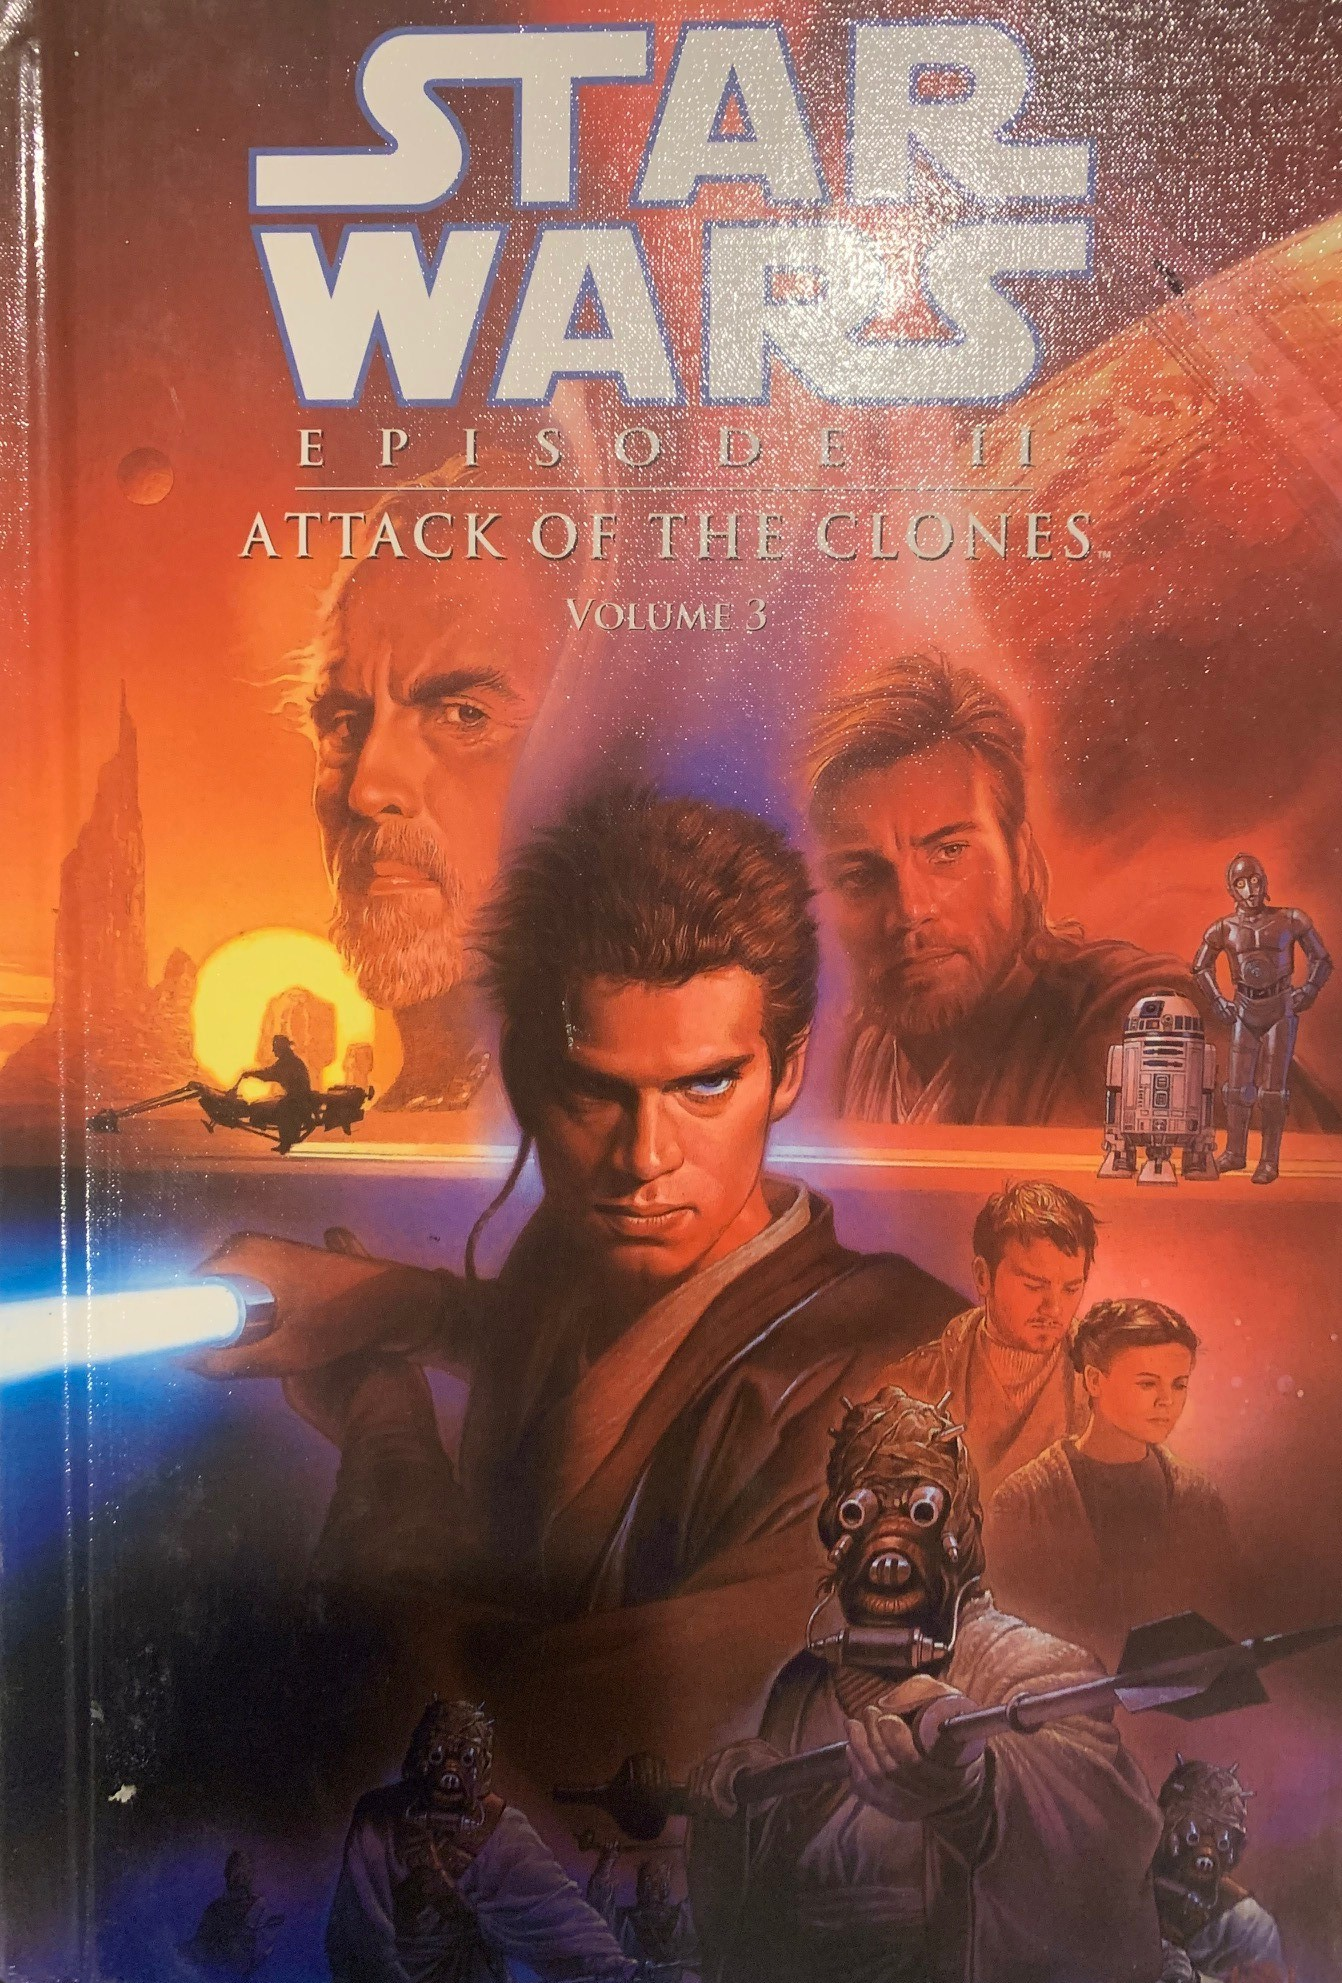 Star Wars Episode II: Attack of the Clones (Spotlight Comic Edition, Volume 3)